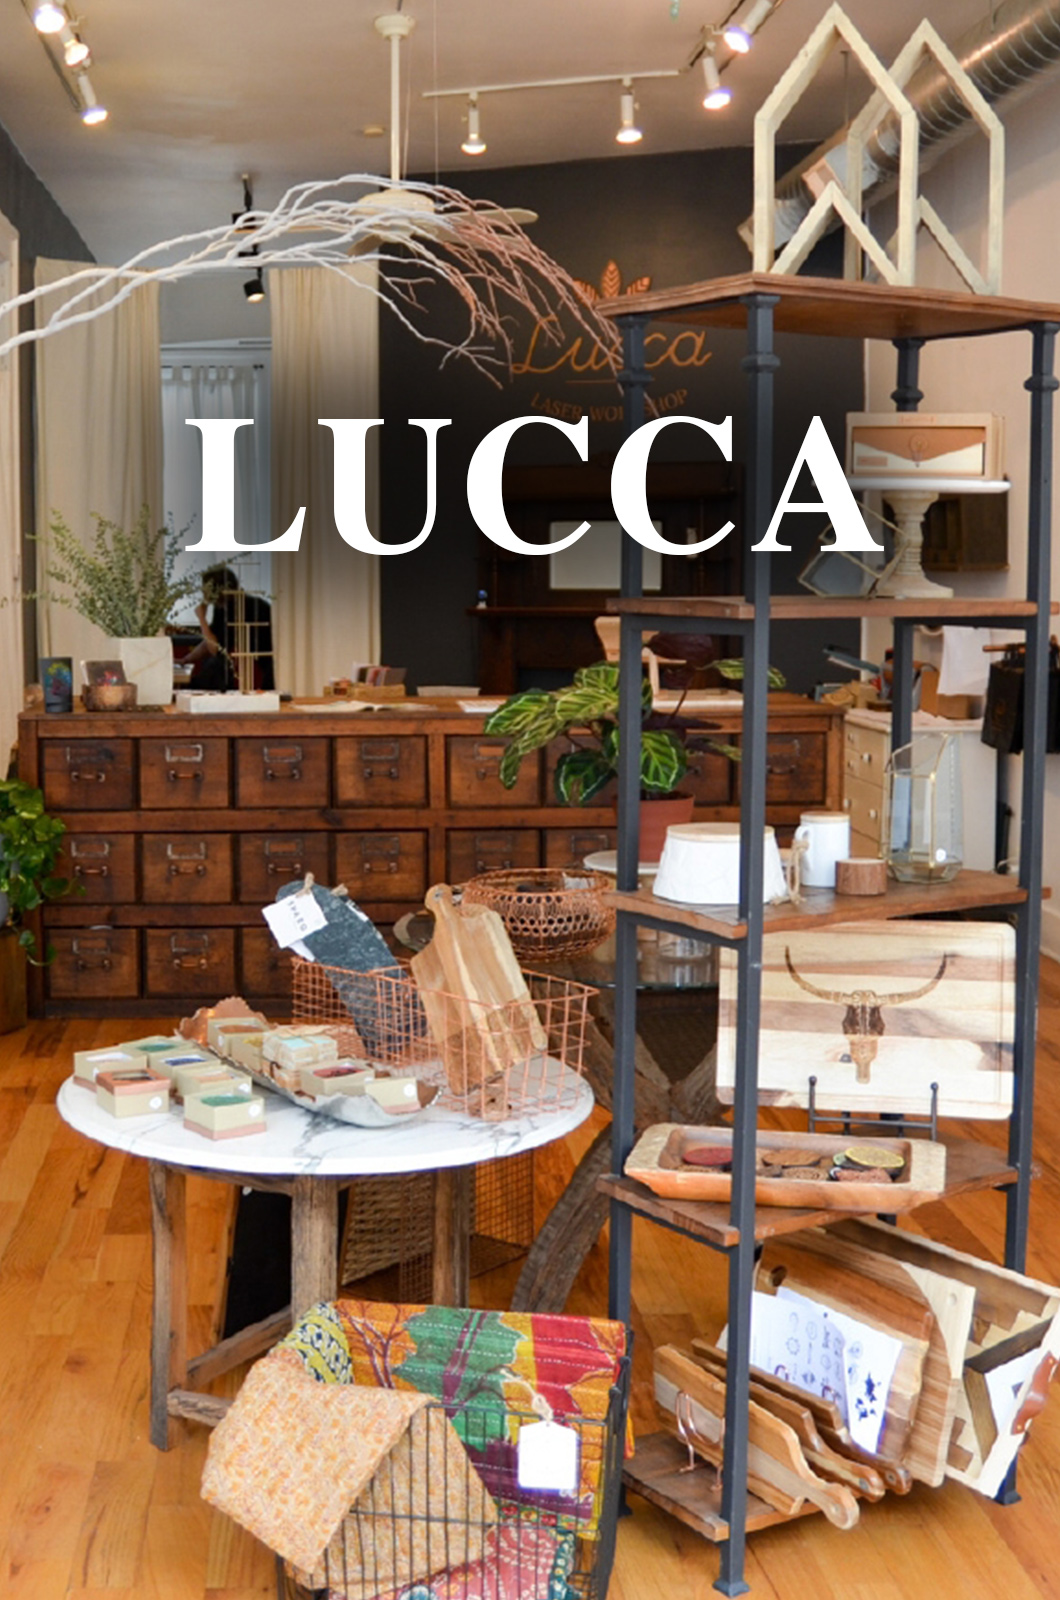 Lucca at{ }126 W Elder Street, Cincinnati, OH (45202) / Image: Brevin Couch // Published: 11.26.19